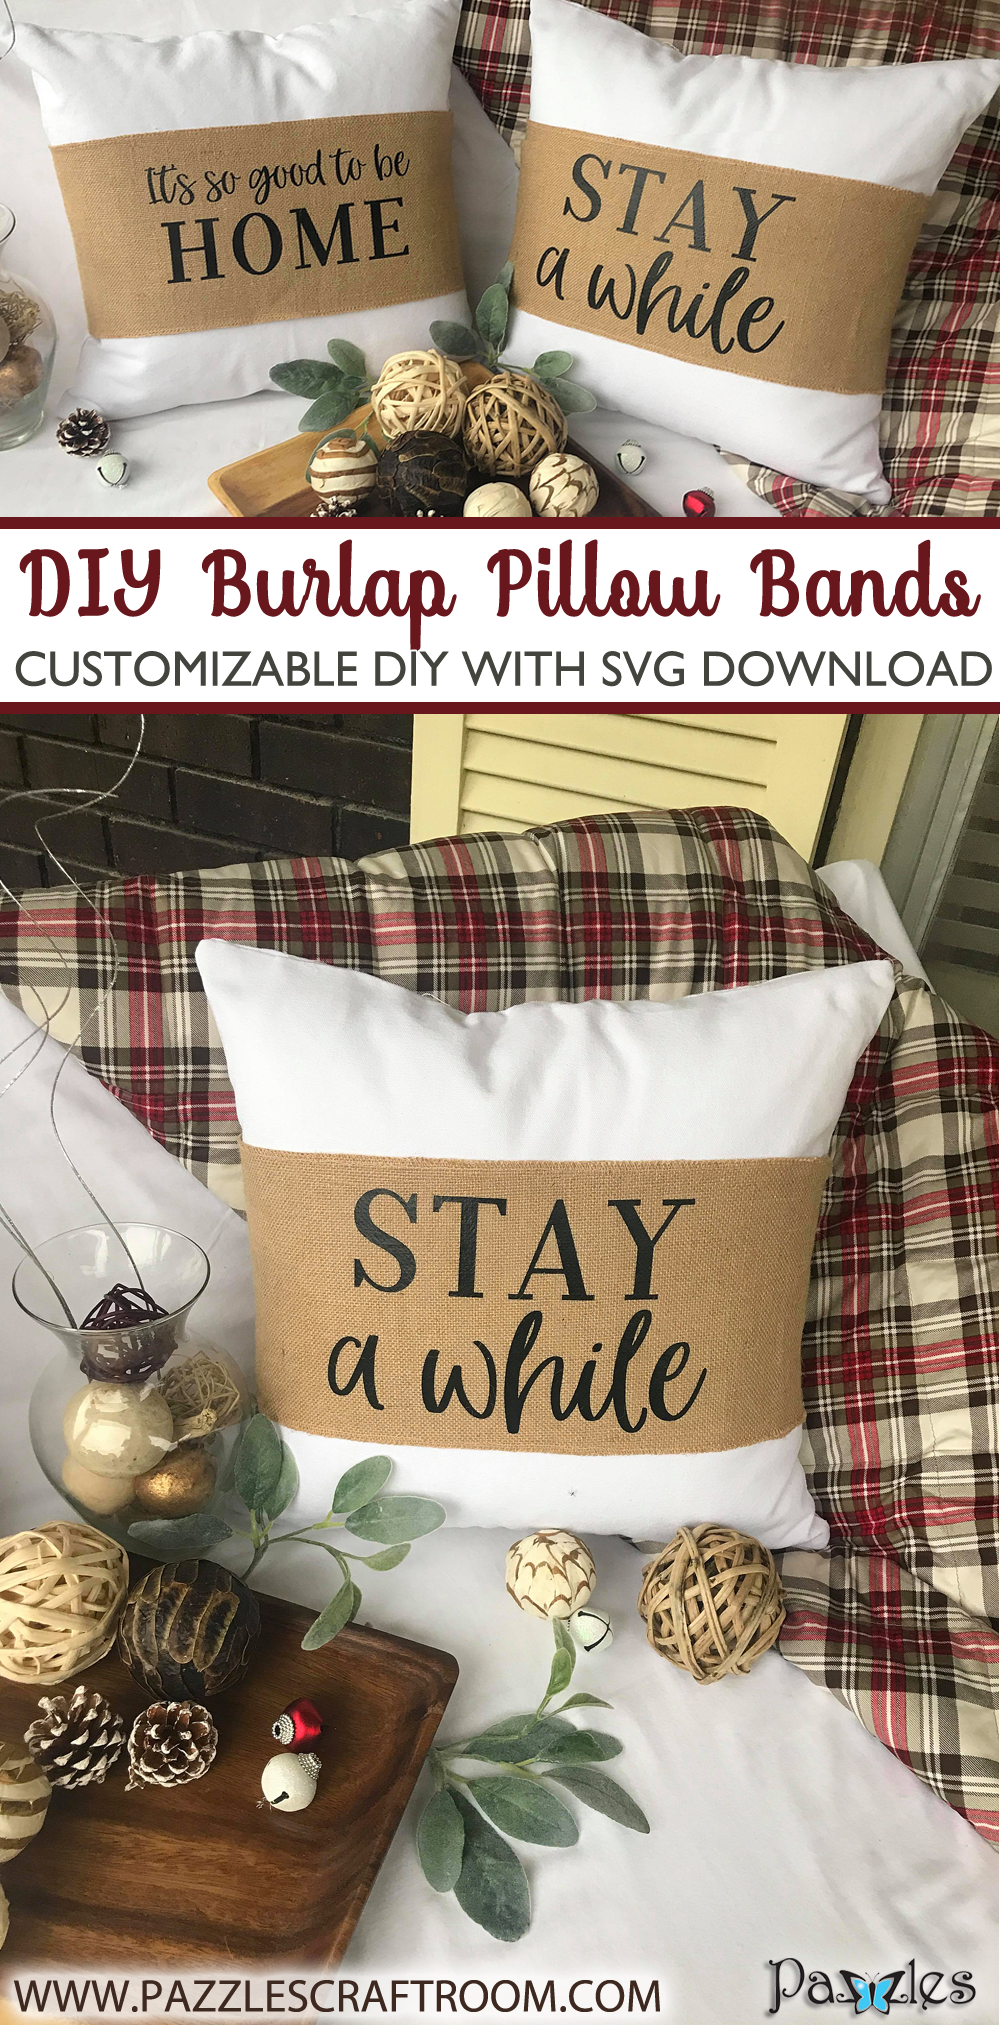 Pazzles DIY Burlap Pillow Band with instant SVG download. Compatible with all major electronic cutters including Pazzles Inspiration, Cricut, and Silhouette Cameo. Project by Lisa Reyes.